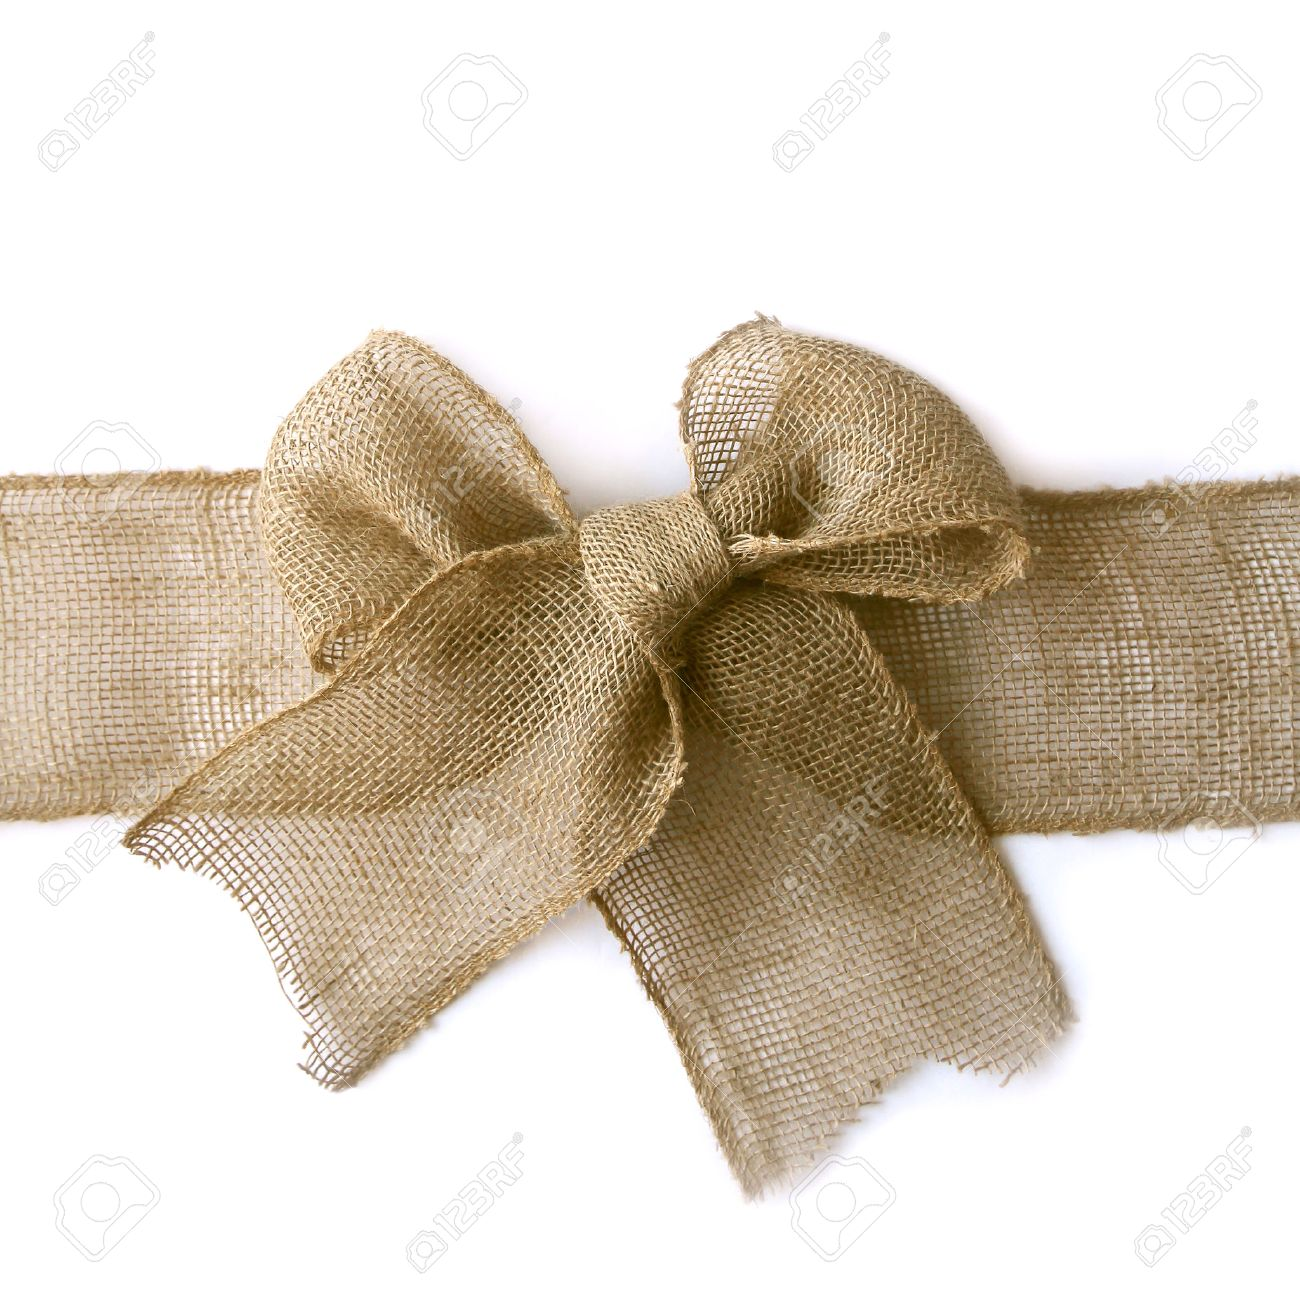 A natural colored burlap wribbon is tied in a bow as if wrapped around a Christmas present, isolated on a white background, with vertical copyspace - 34104268